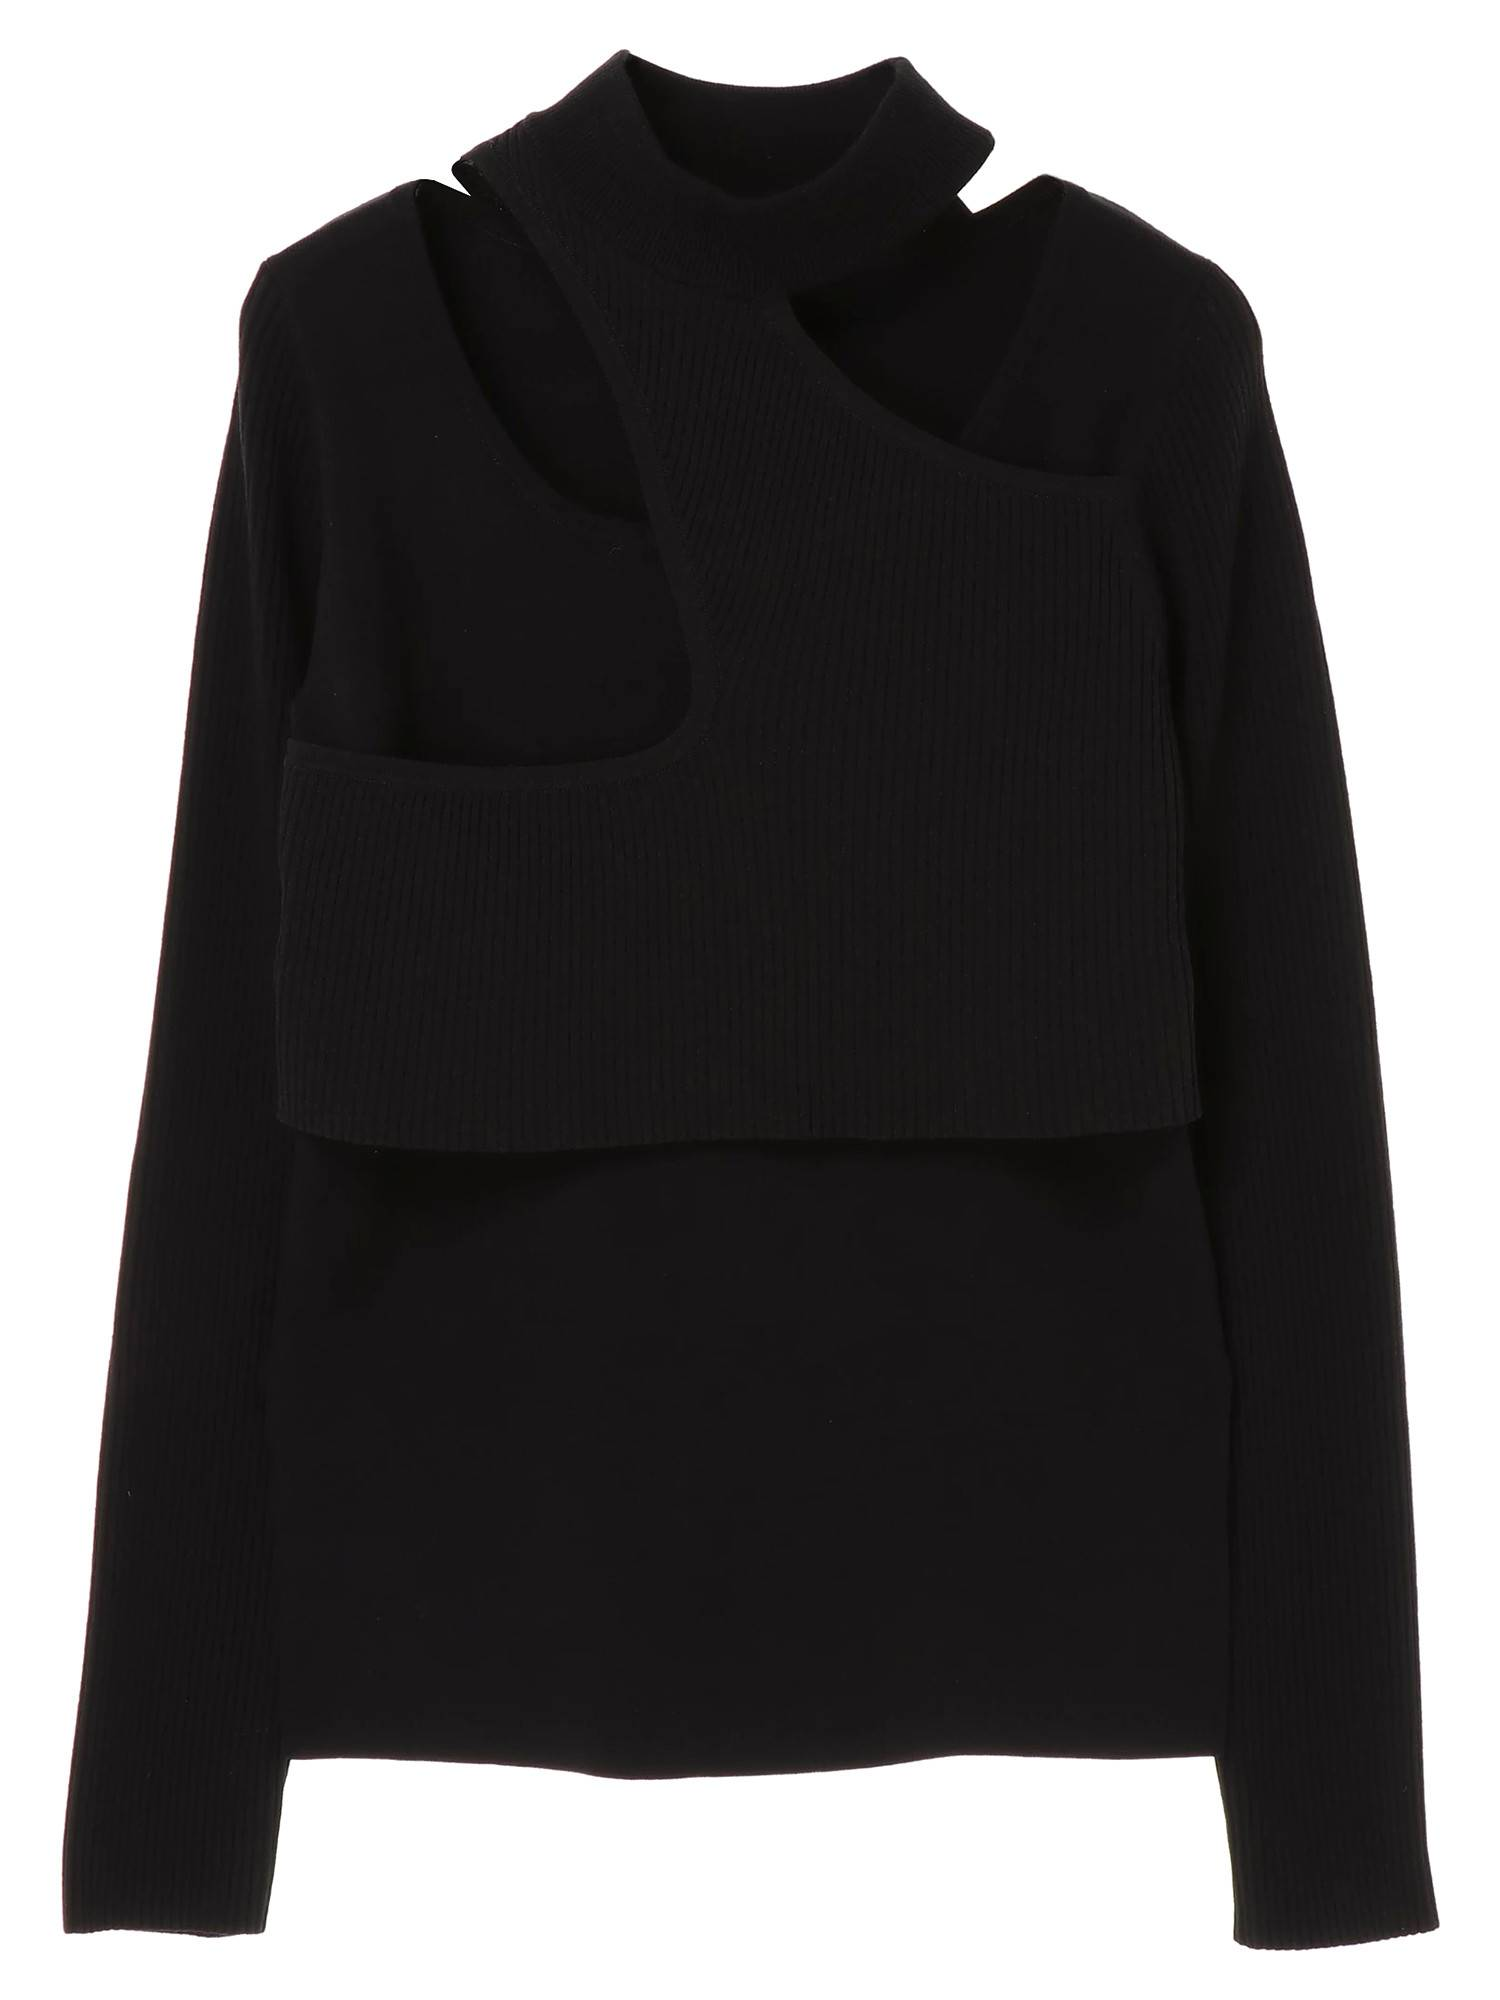 ASYMME LAYERED L/S KT